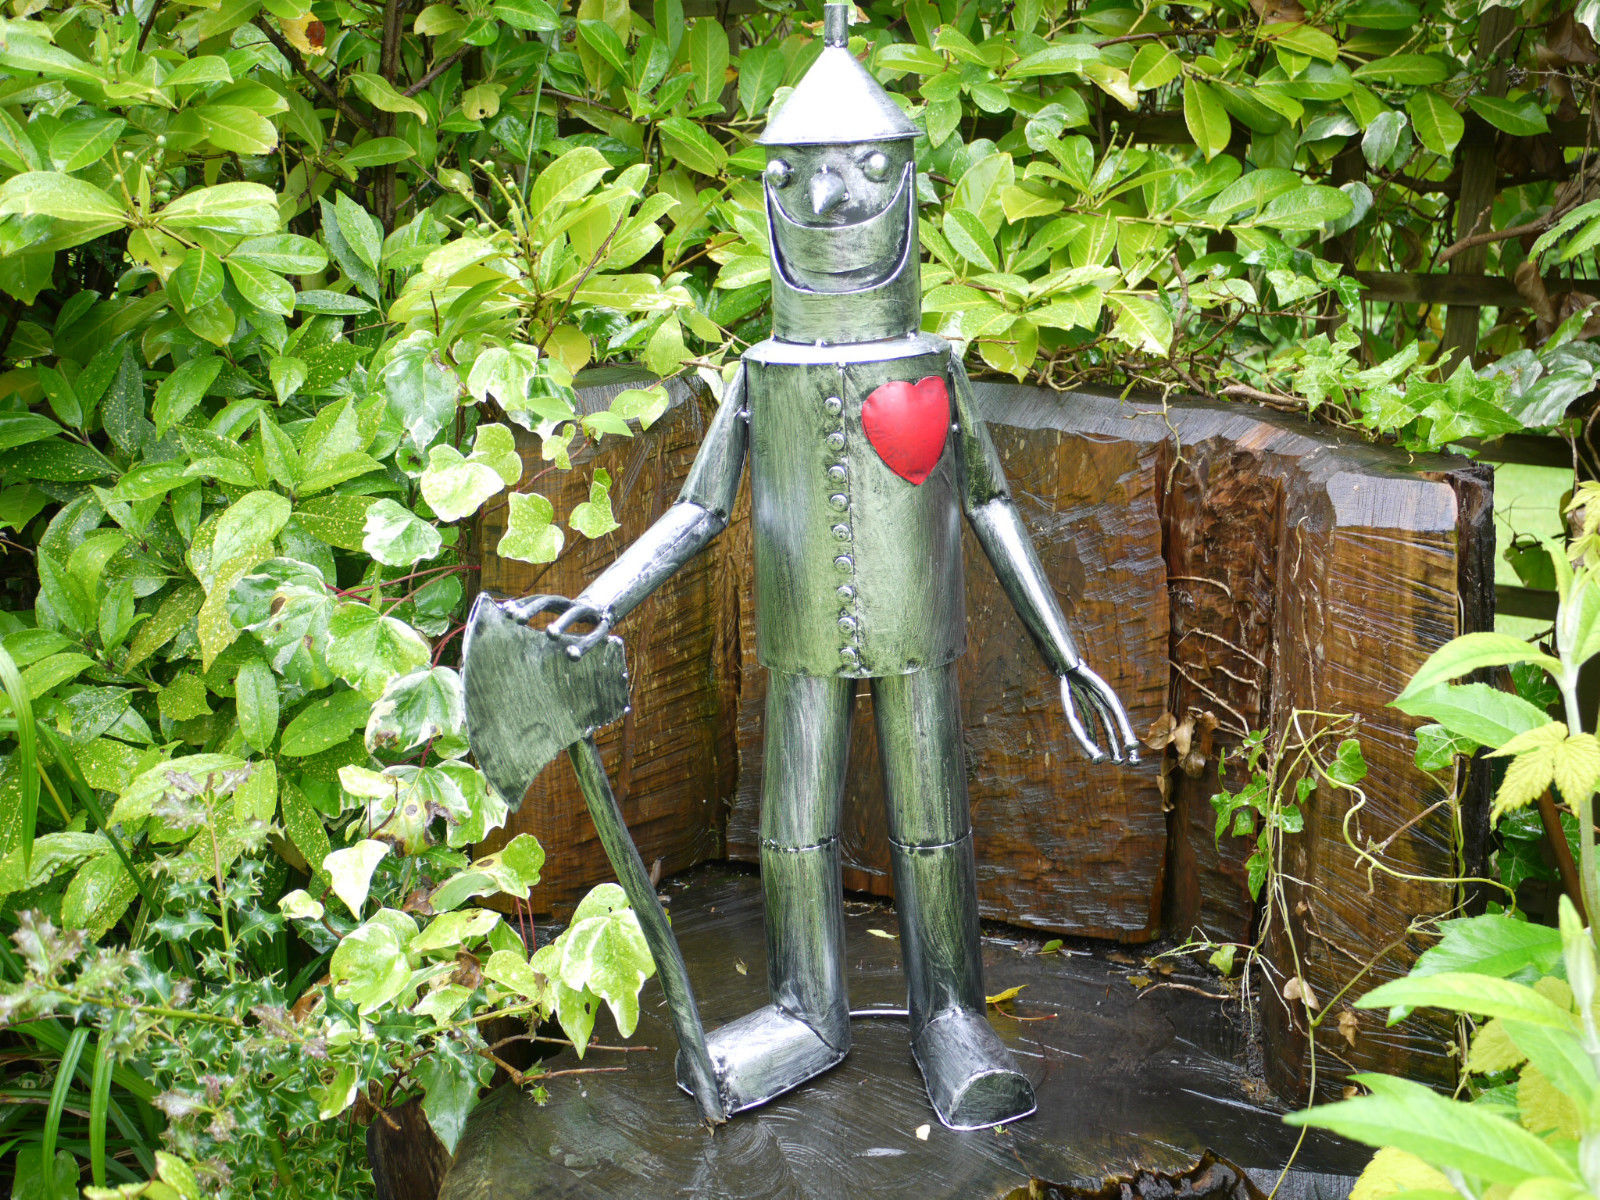 Stunning Fun Item Wizard of Oz Metal TIN MAN Character home/garden ornament 3756